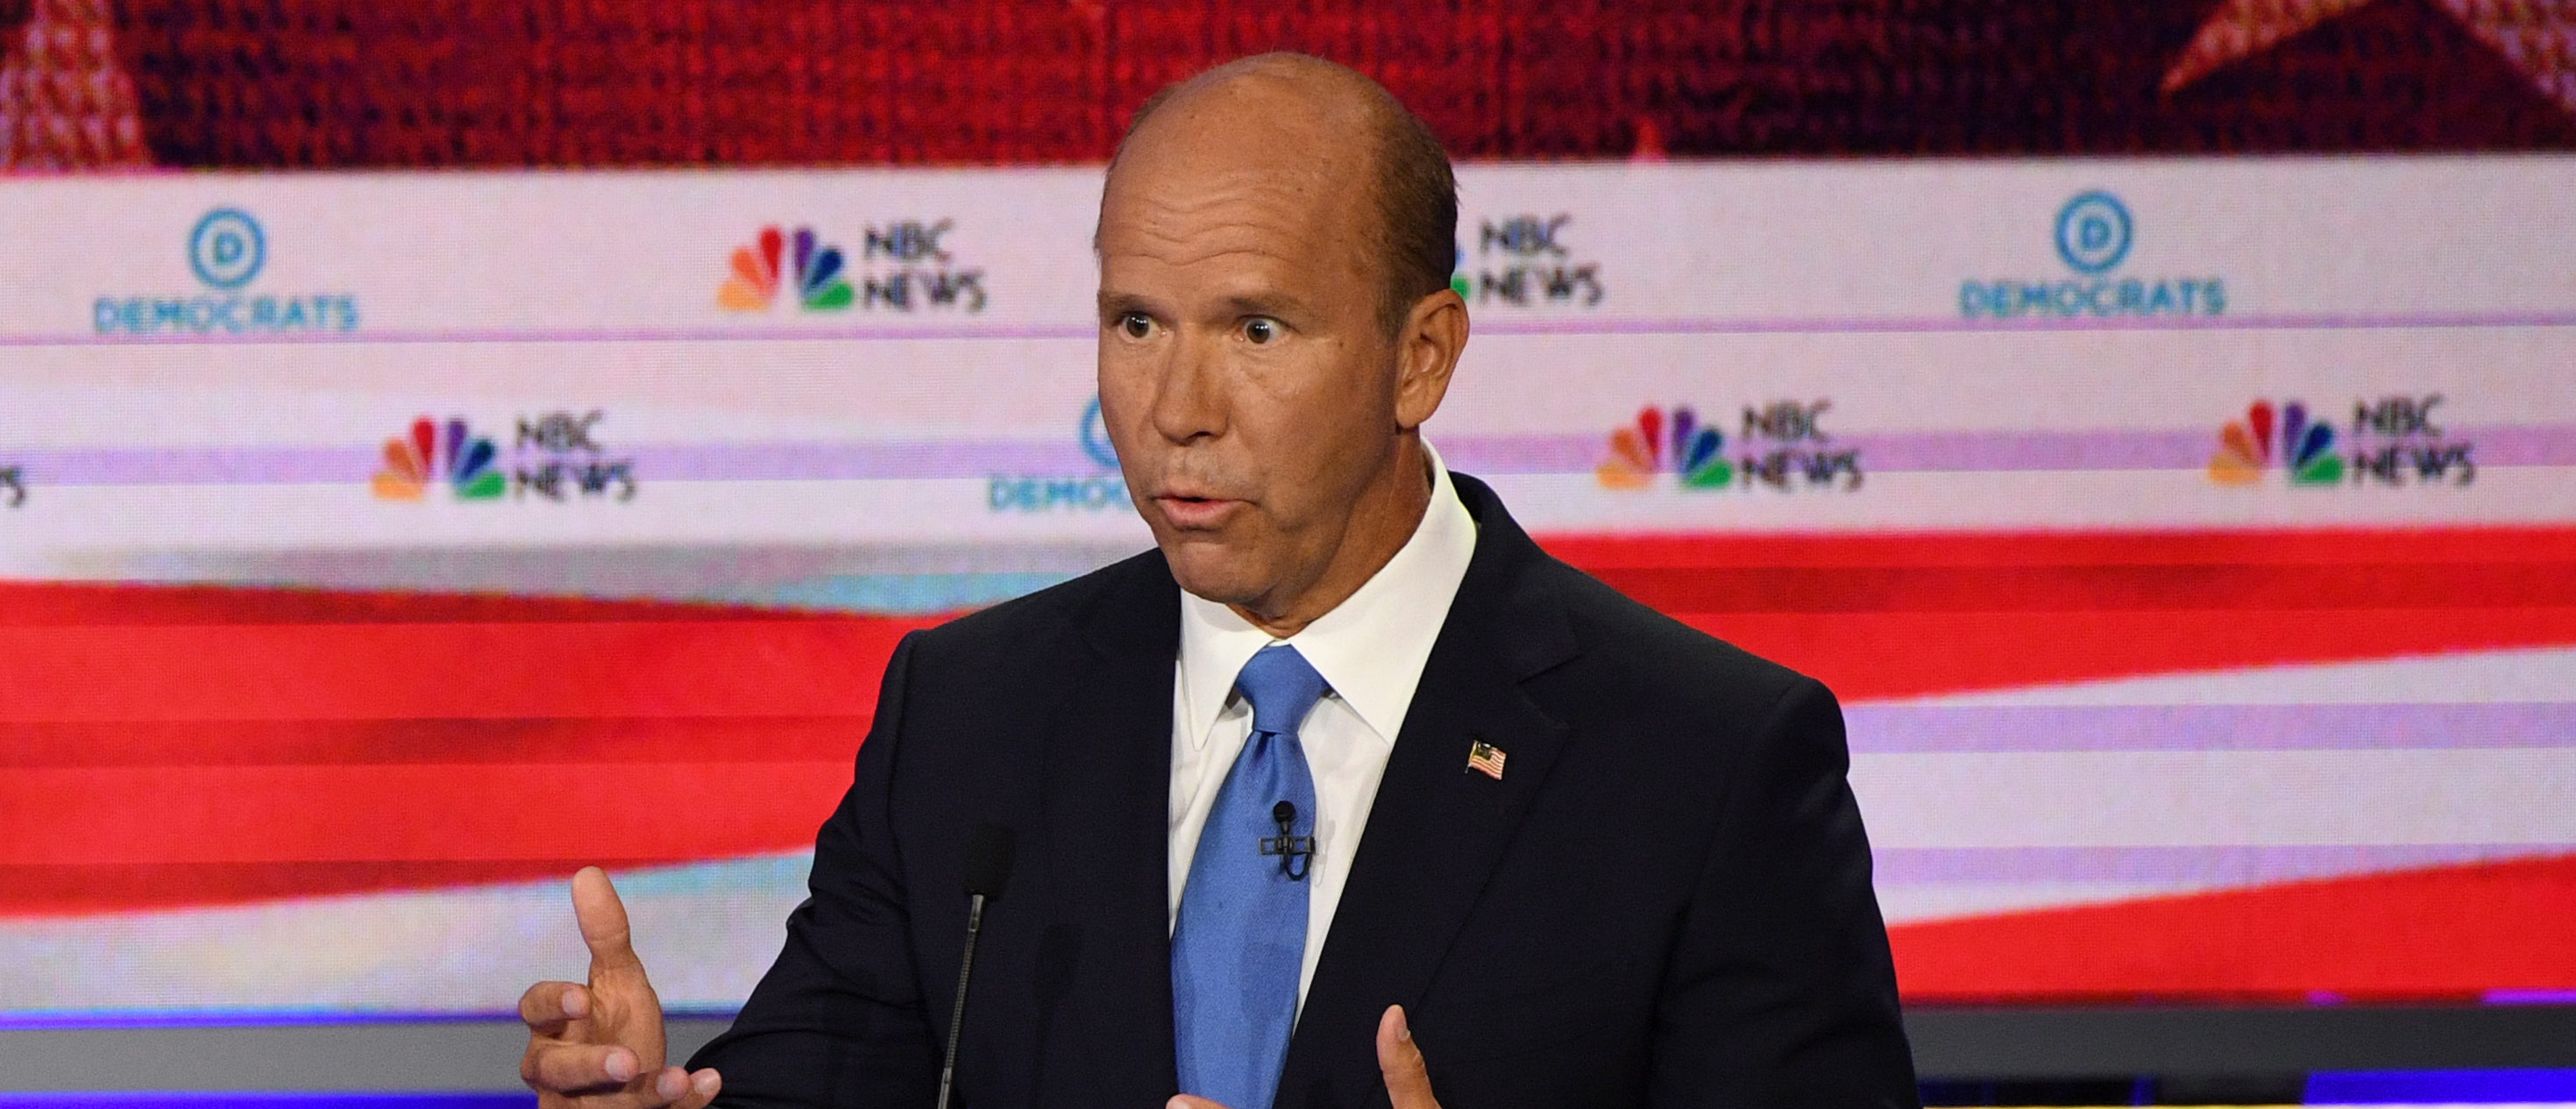 Former US Representative for Maryland's 6th congressional district John Delaney speaks during the first Democratic primary debate of the 2020 presidential campaign season hosted by NBC News (JIM WATSON/AFP/Getty Images)